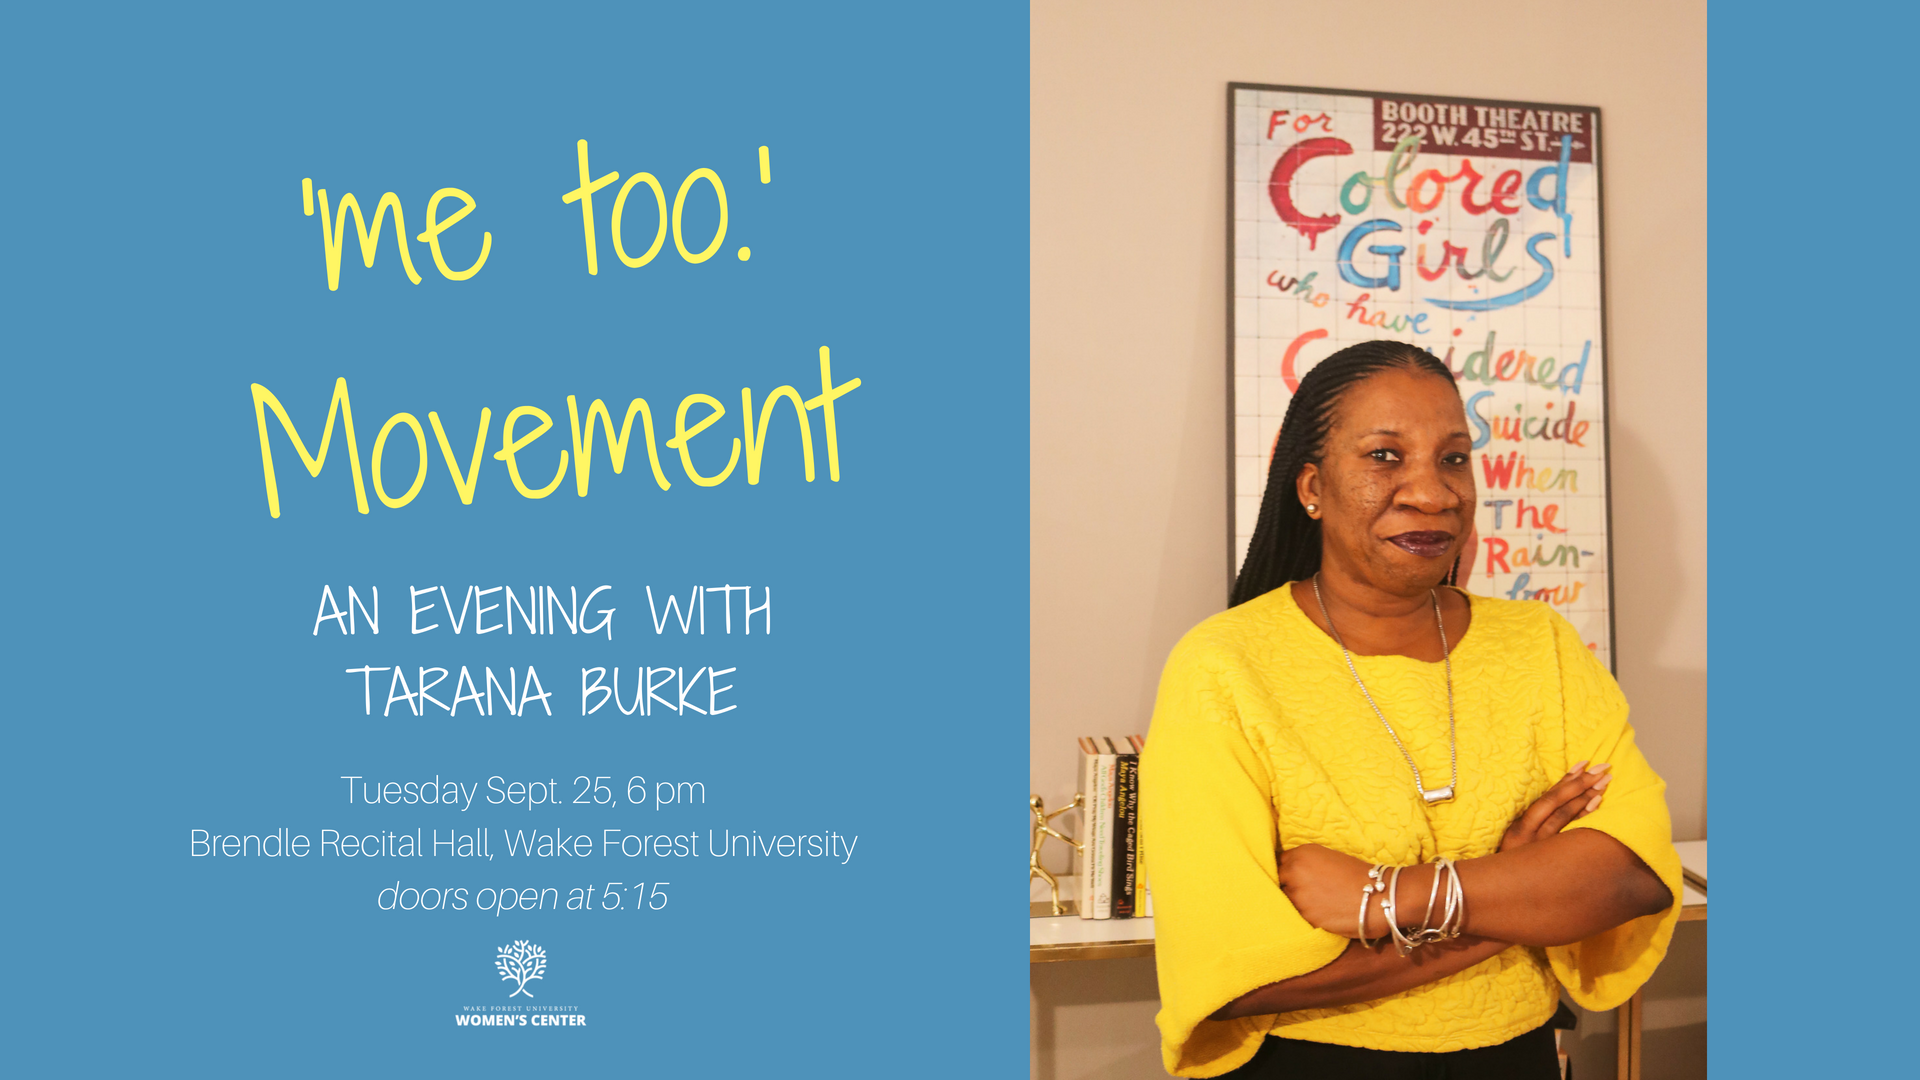 Get tickets for 'me too.' Movement: An evening with Tarana Burke (event details are also found here)